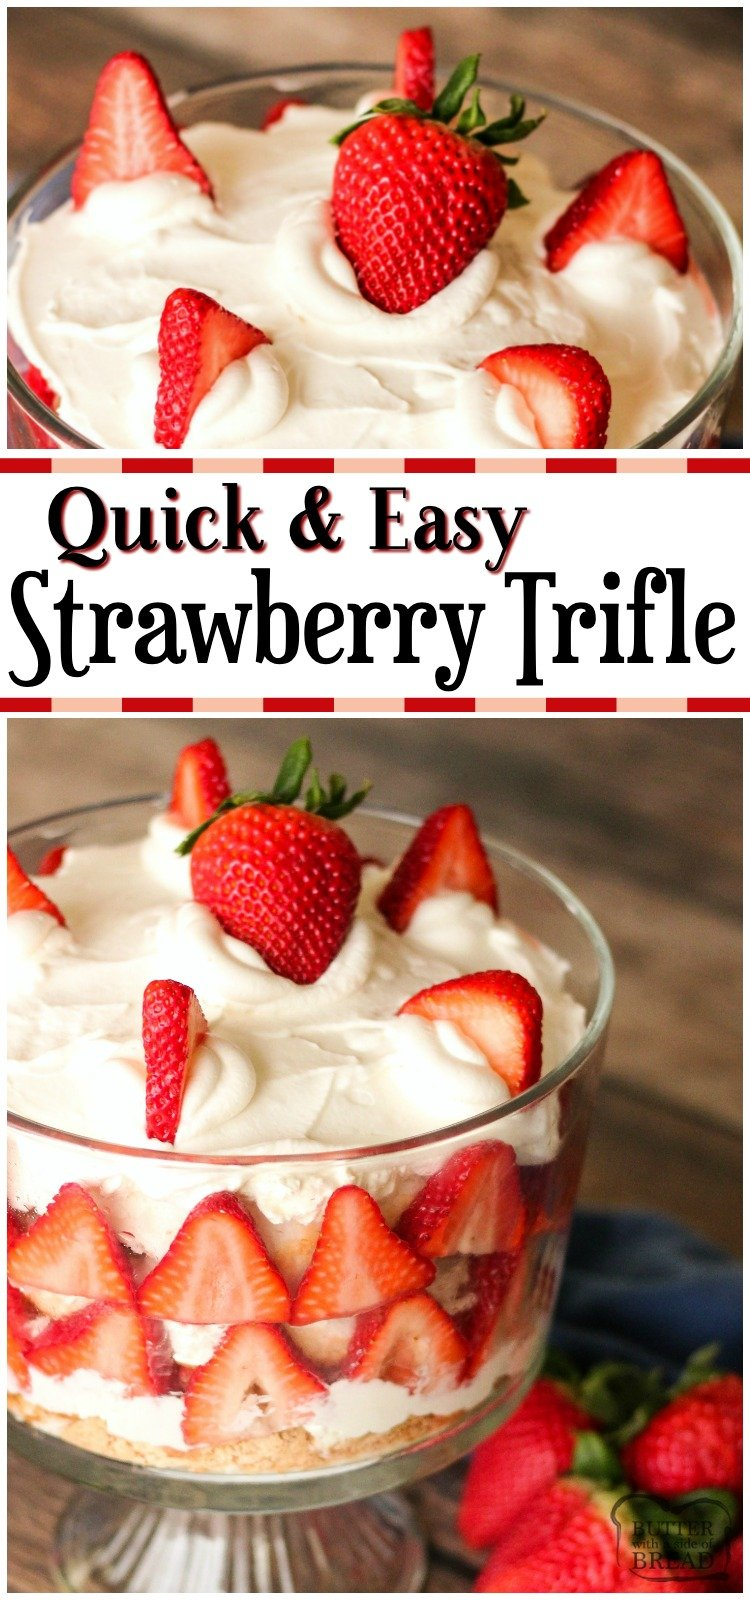 Quick & Easy Strawberry Trifle recipe is a delicious dessert layered with fresh strawberries, angel food cake and cream cheese whipped cream! Elegant trifle dessert that's made in minutes with very simple ingredients.